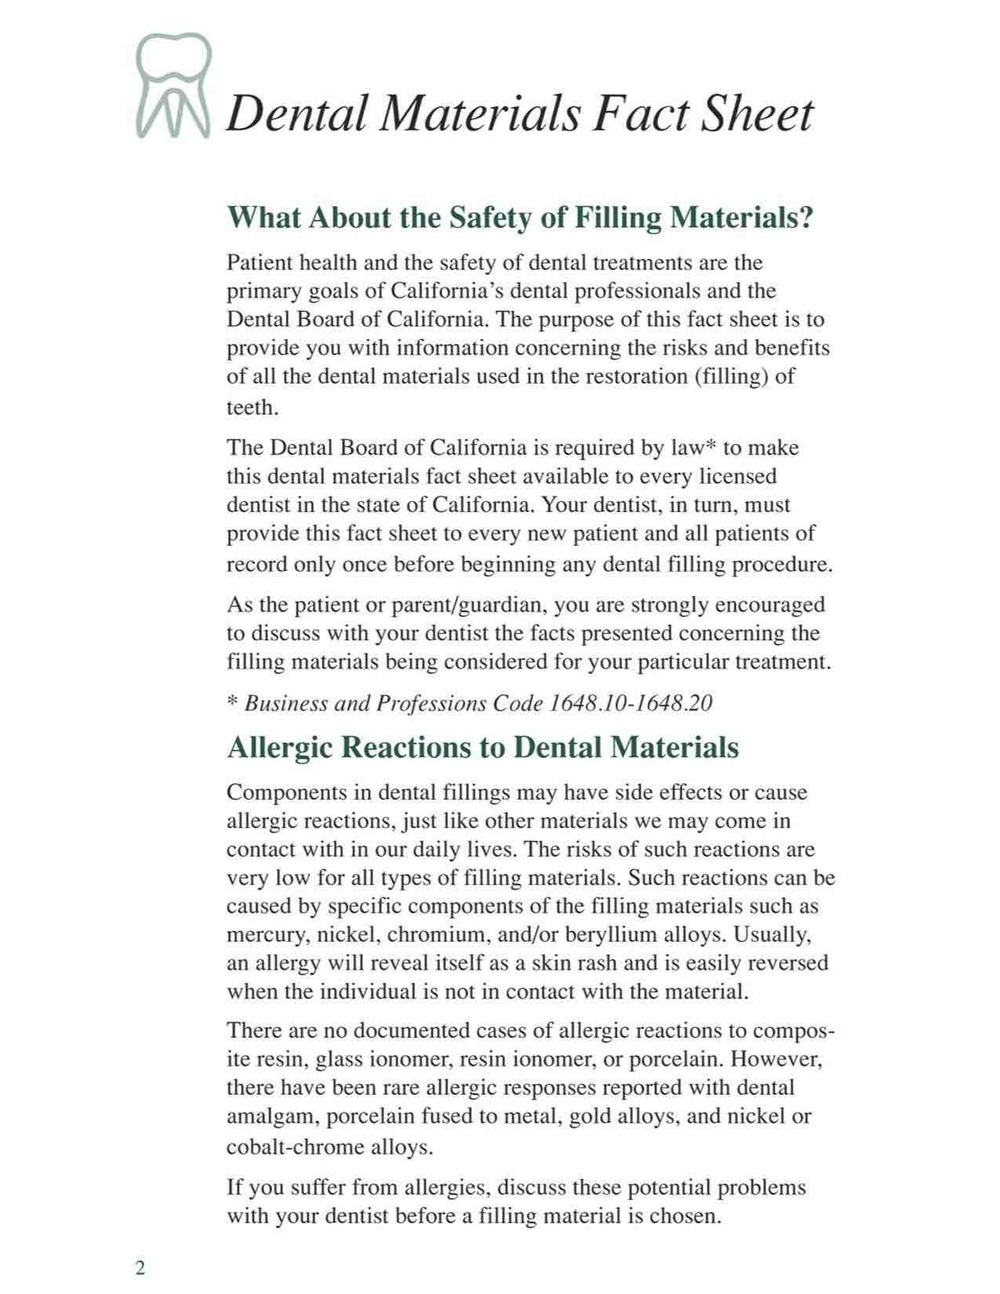 Dental Materials Fact Sheet-2.jpg